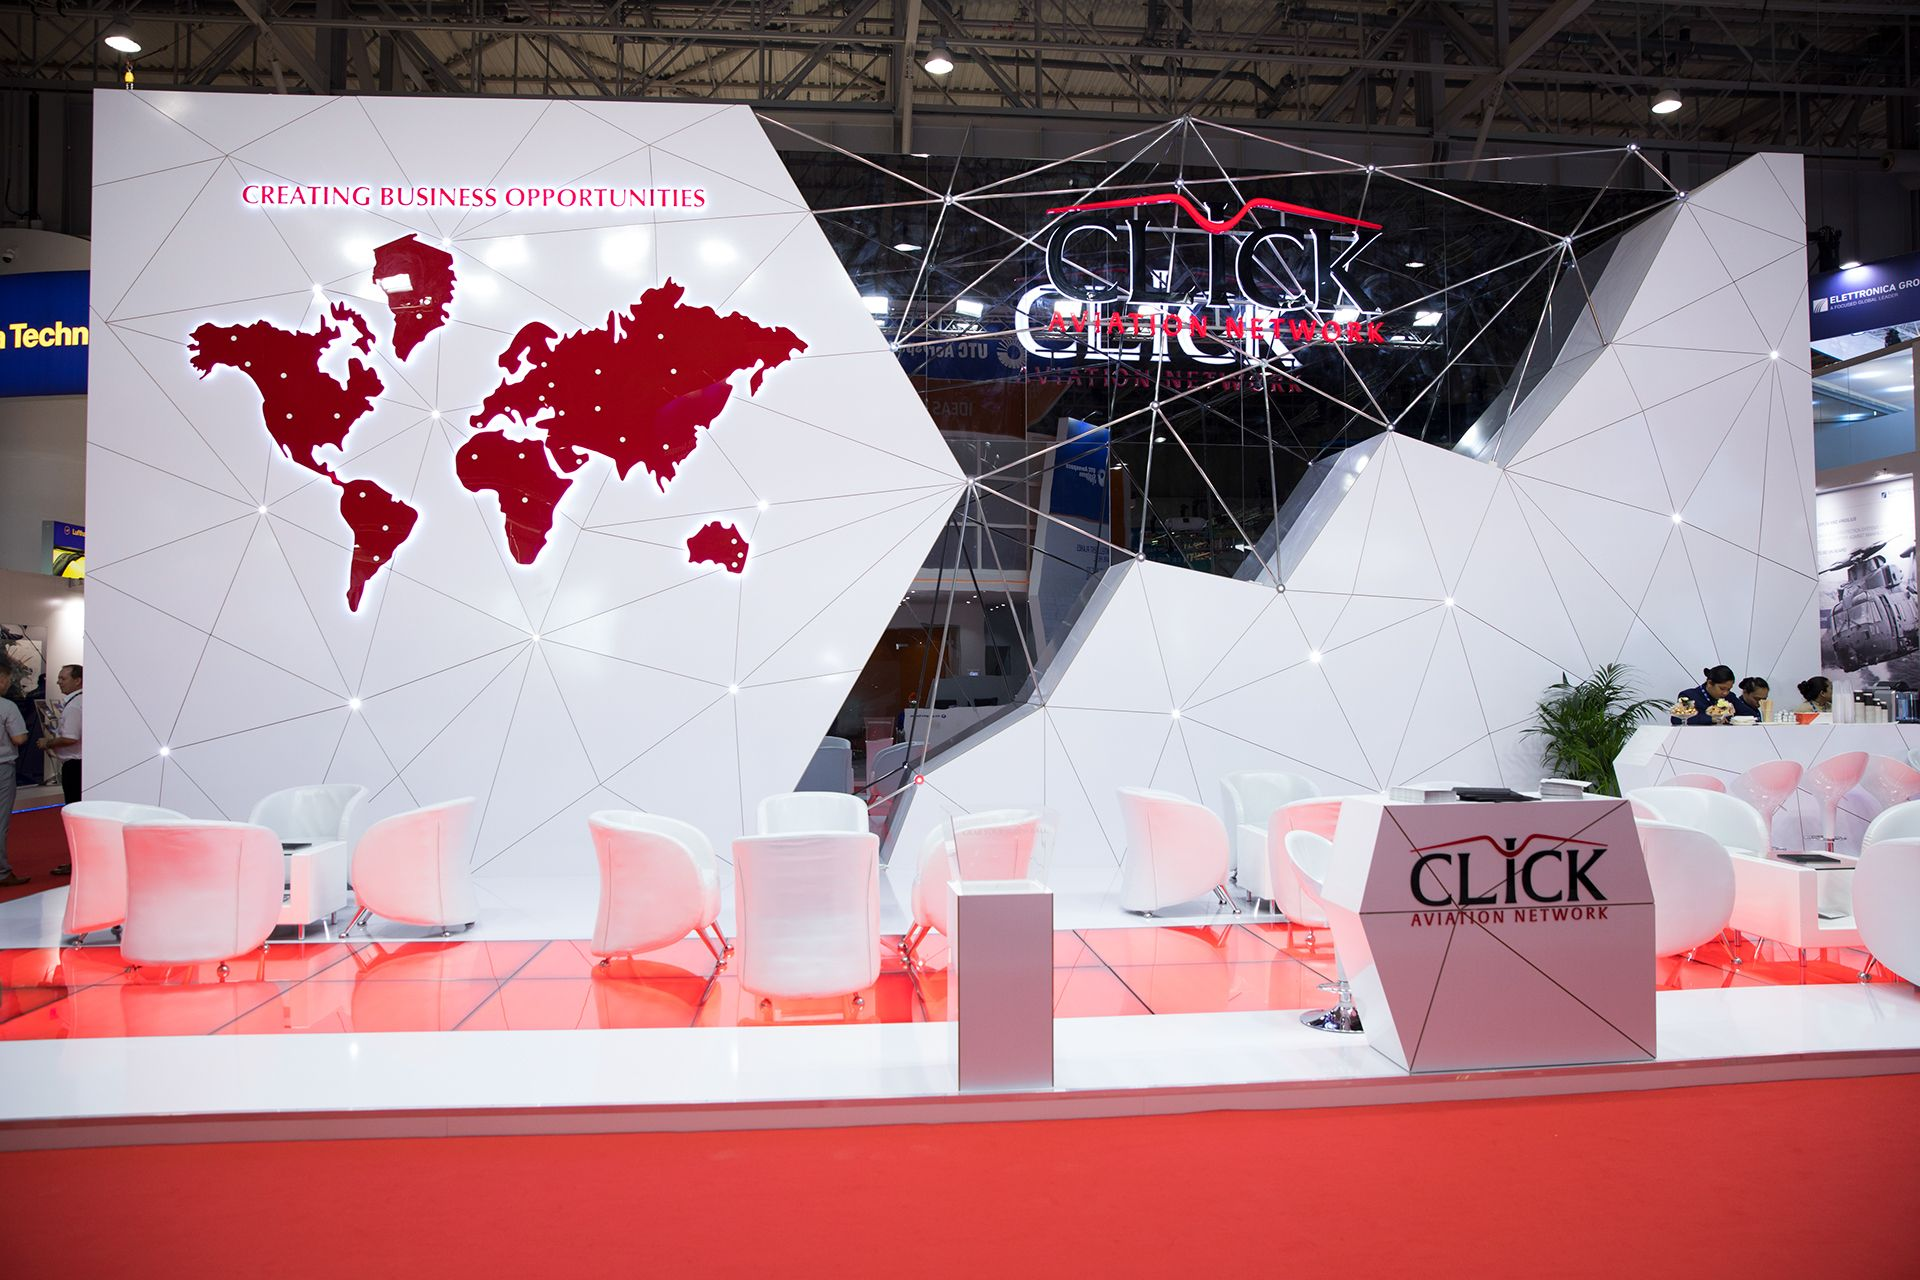 Dubai Airshow 2017 Click Aviation Exhibition Stand on